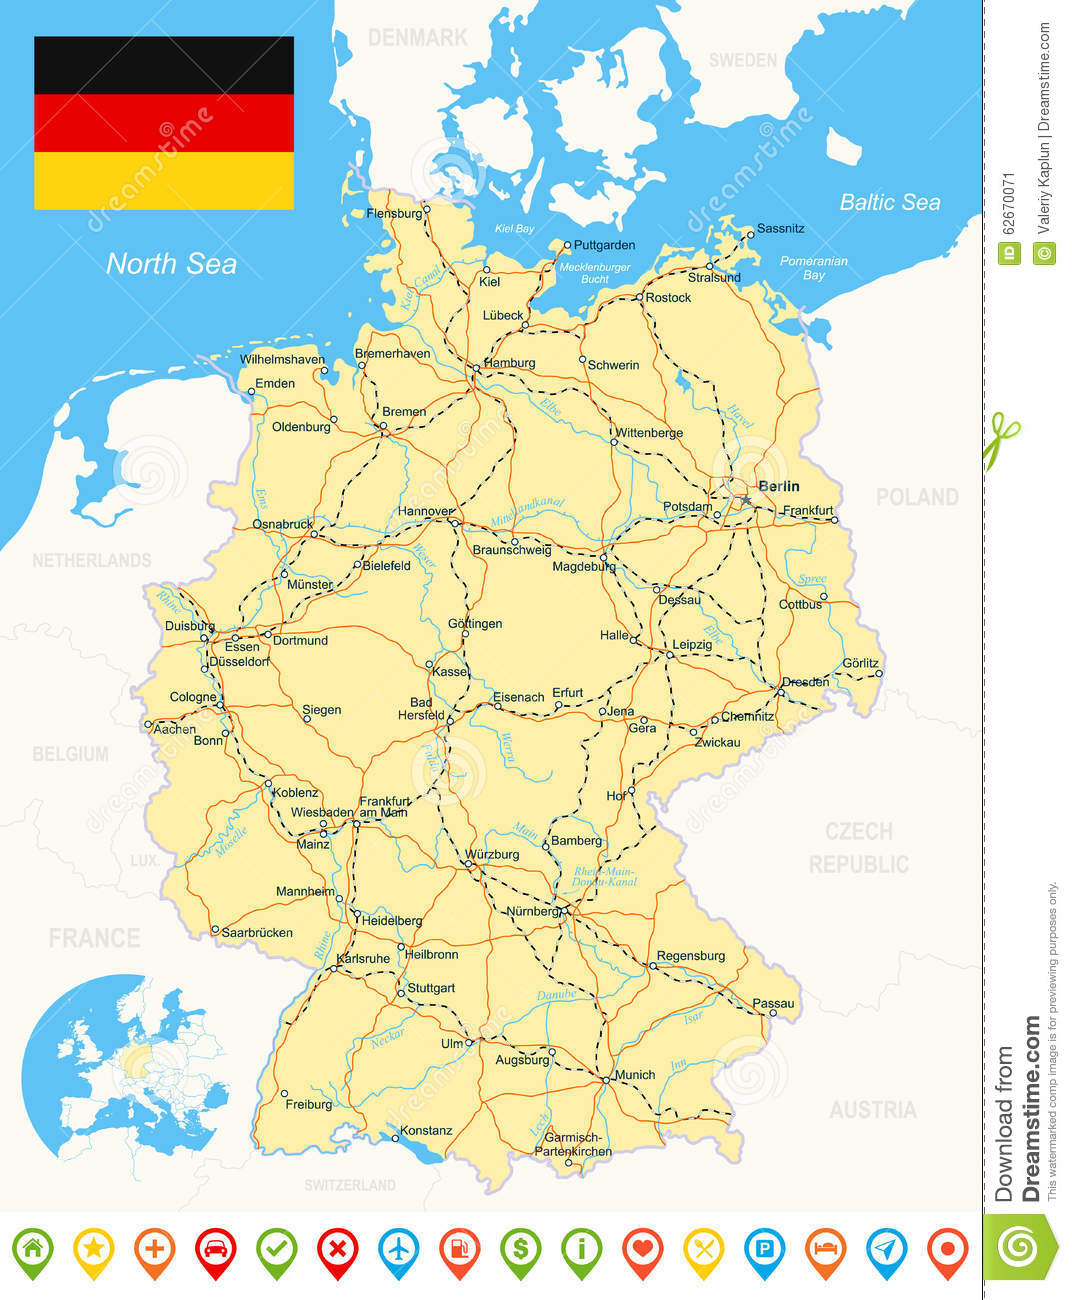 Map Of Germany With Rivers.Germany Map Flag Navigation Icons Roads Rivers Illustration